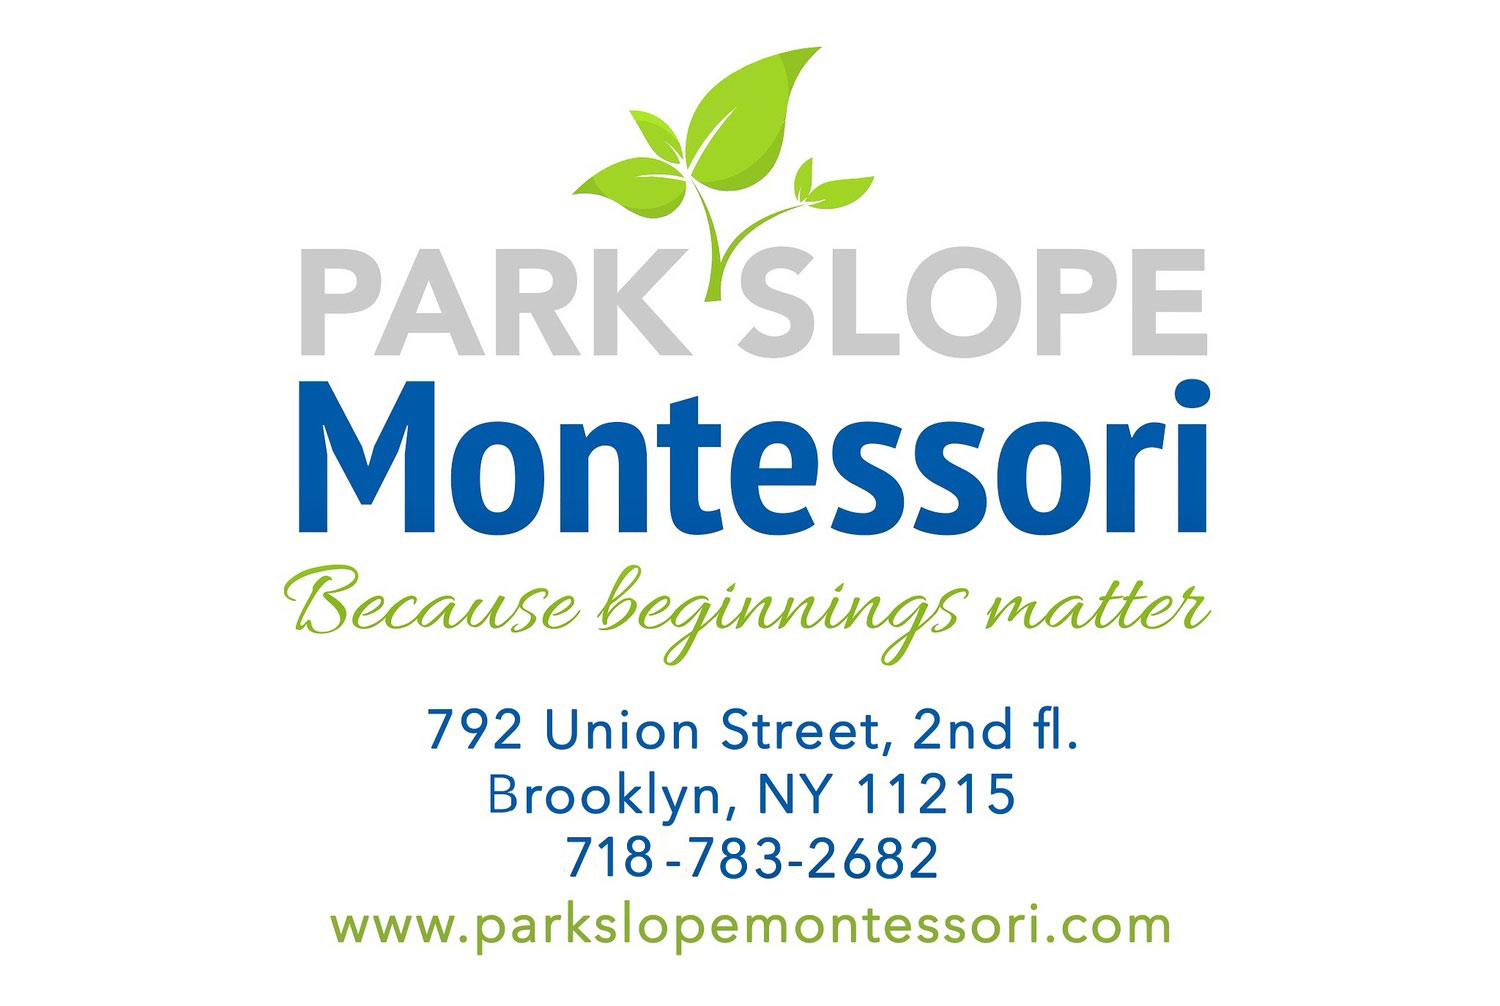 Park Slope Montessori